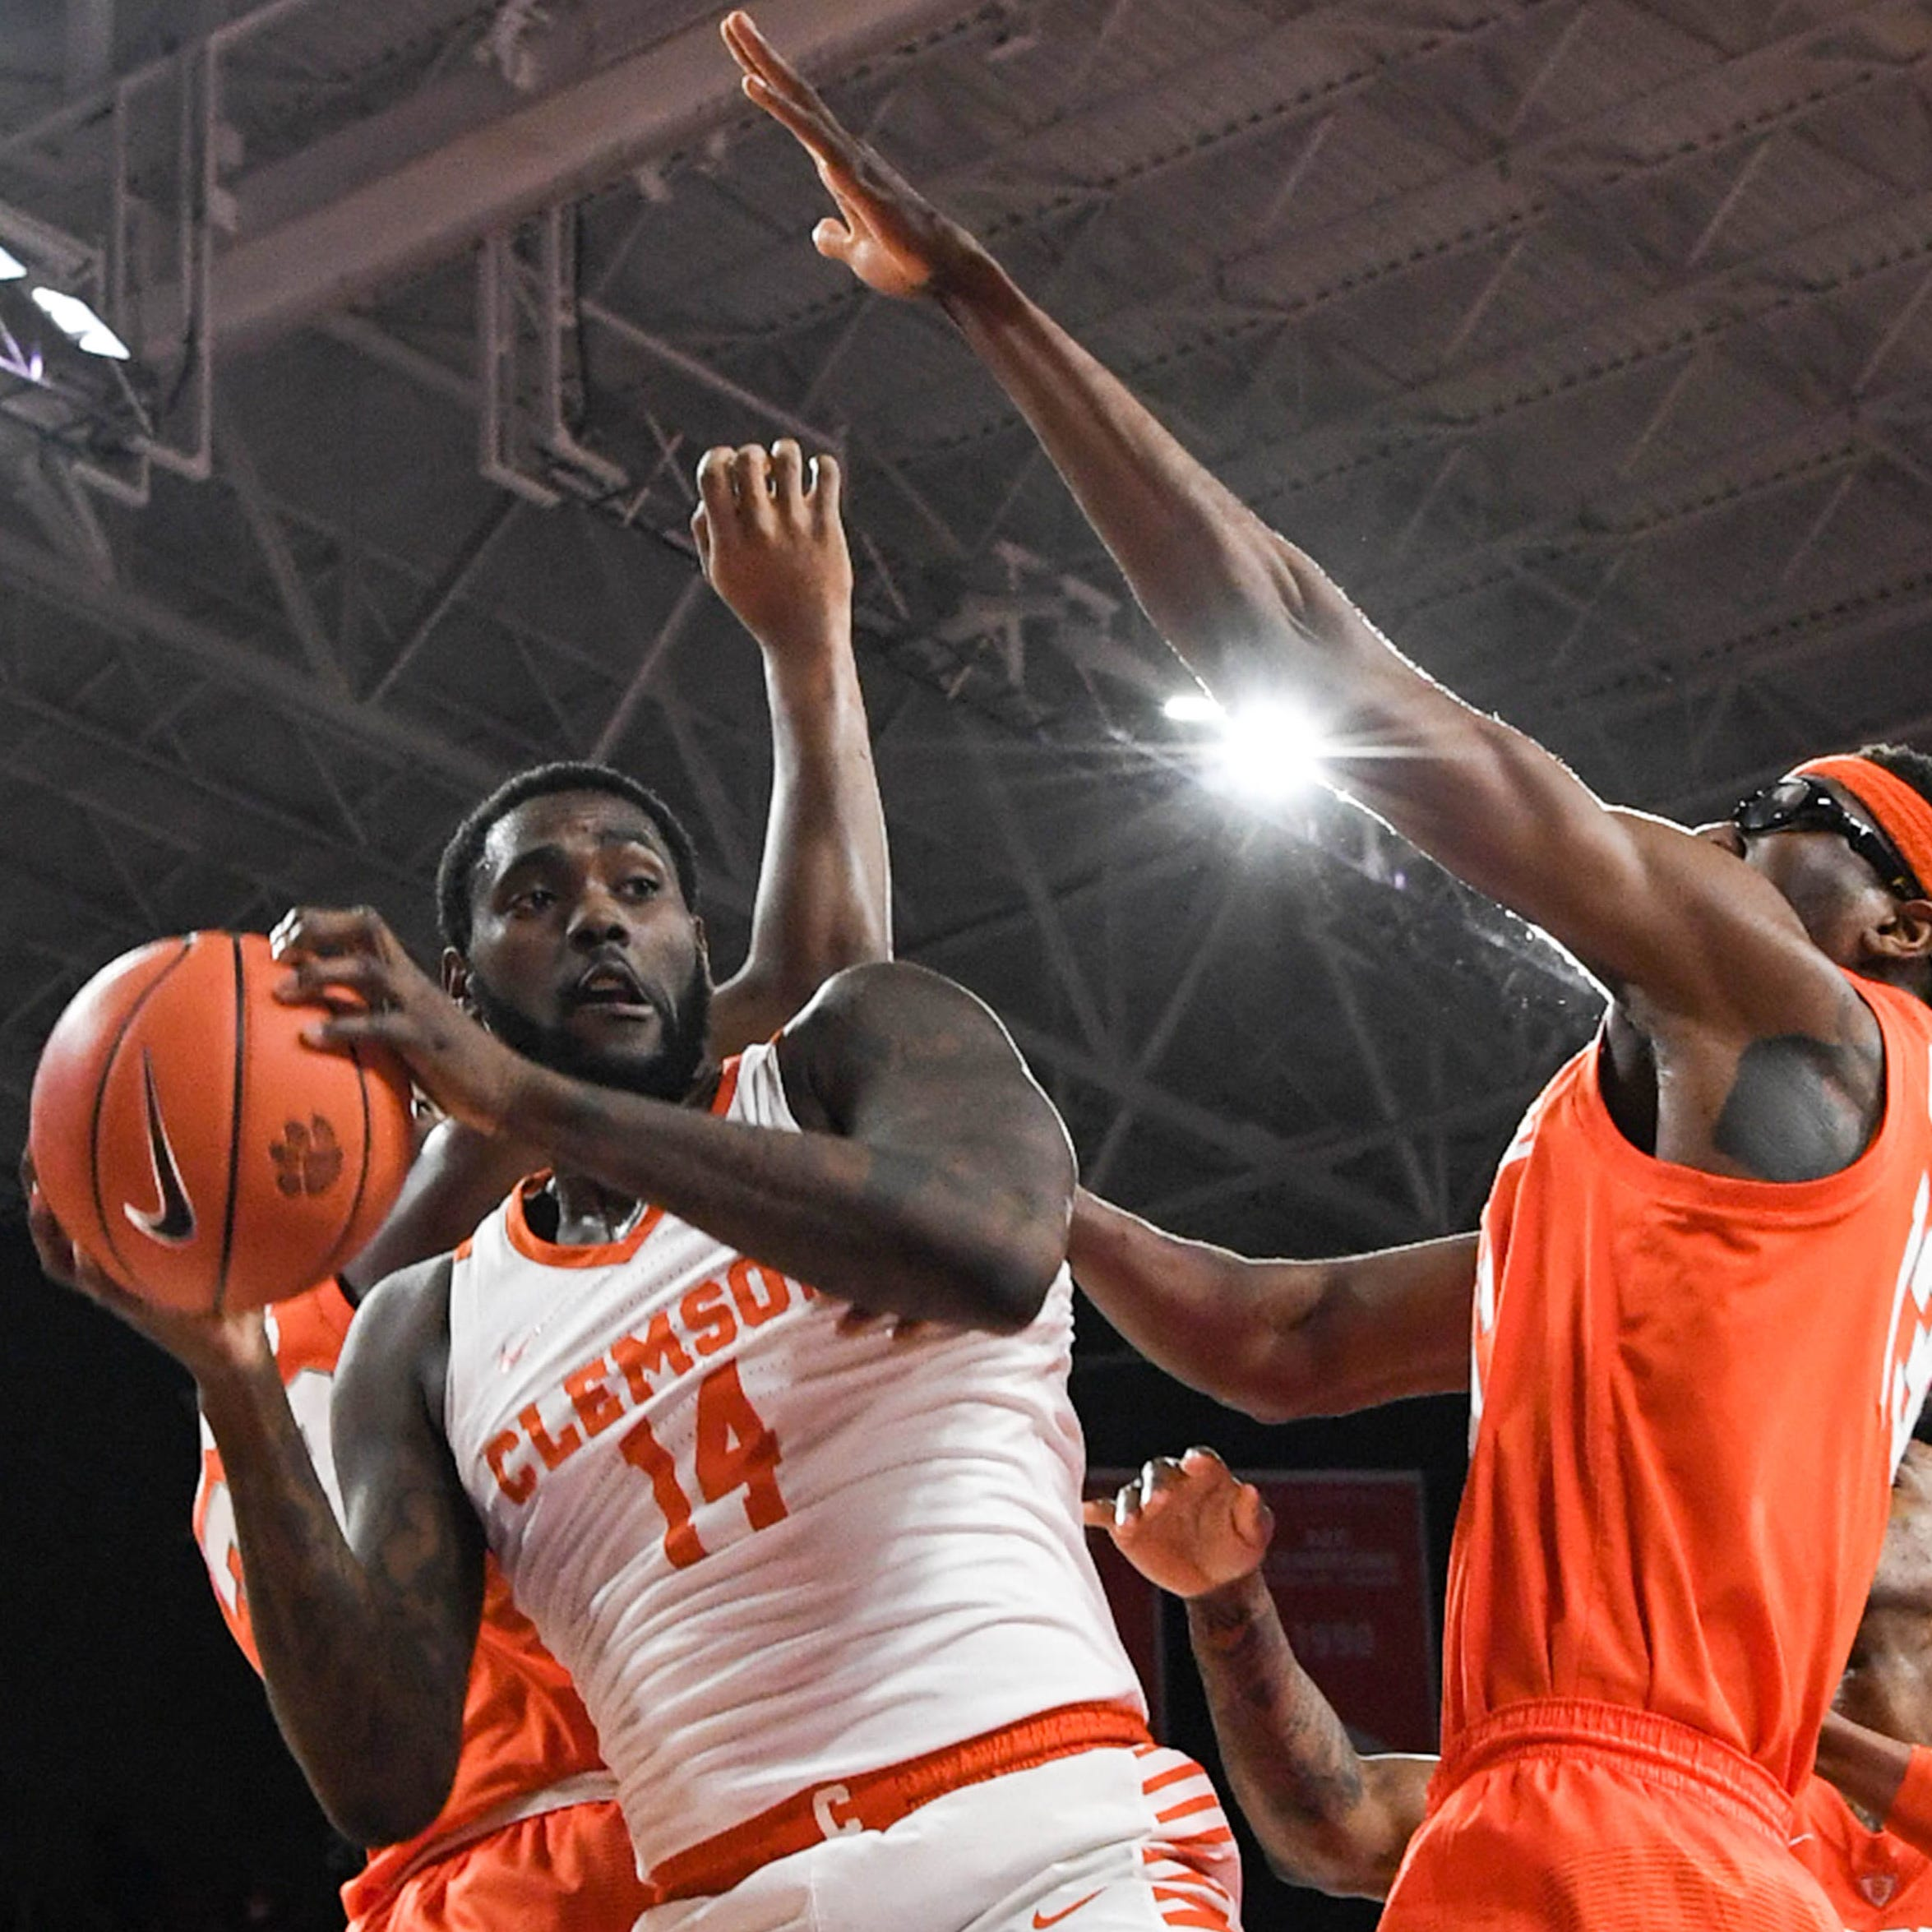 For Clemson basketball, March Madness hopes rest on N.C. State game